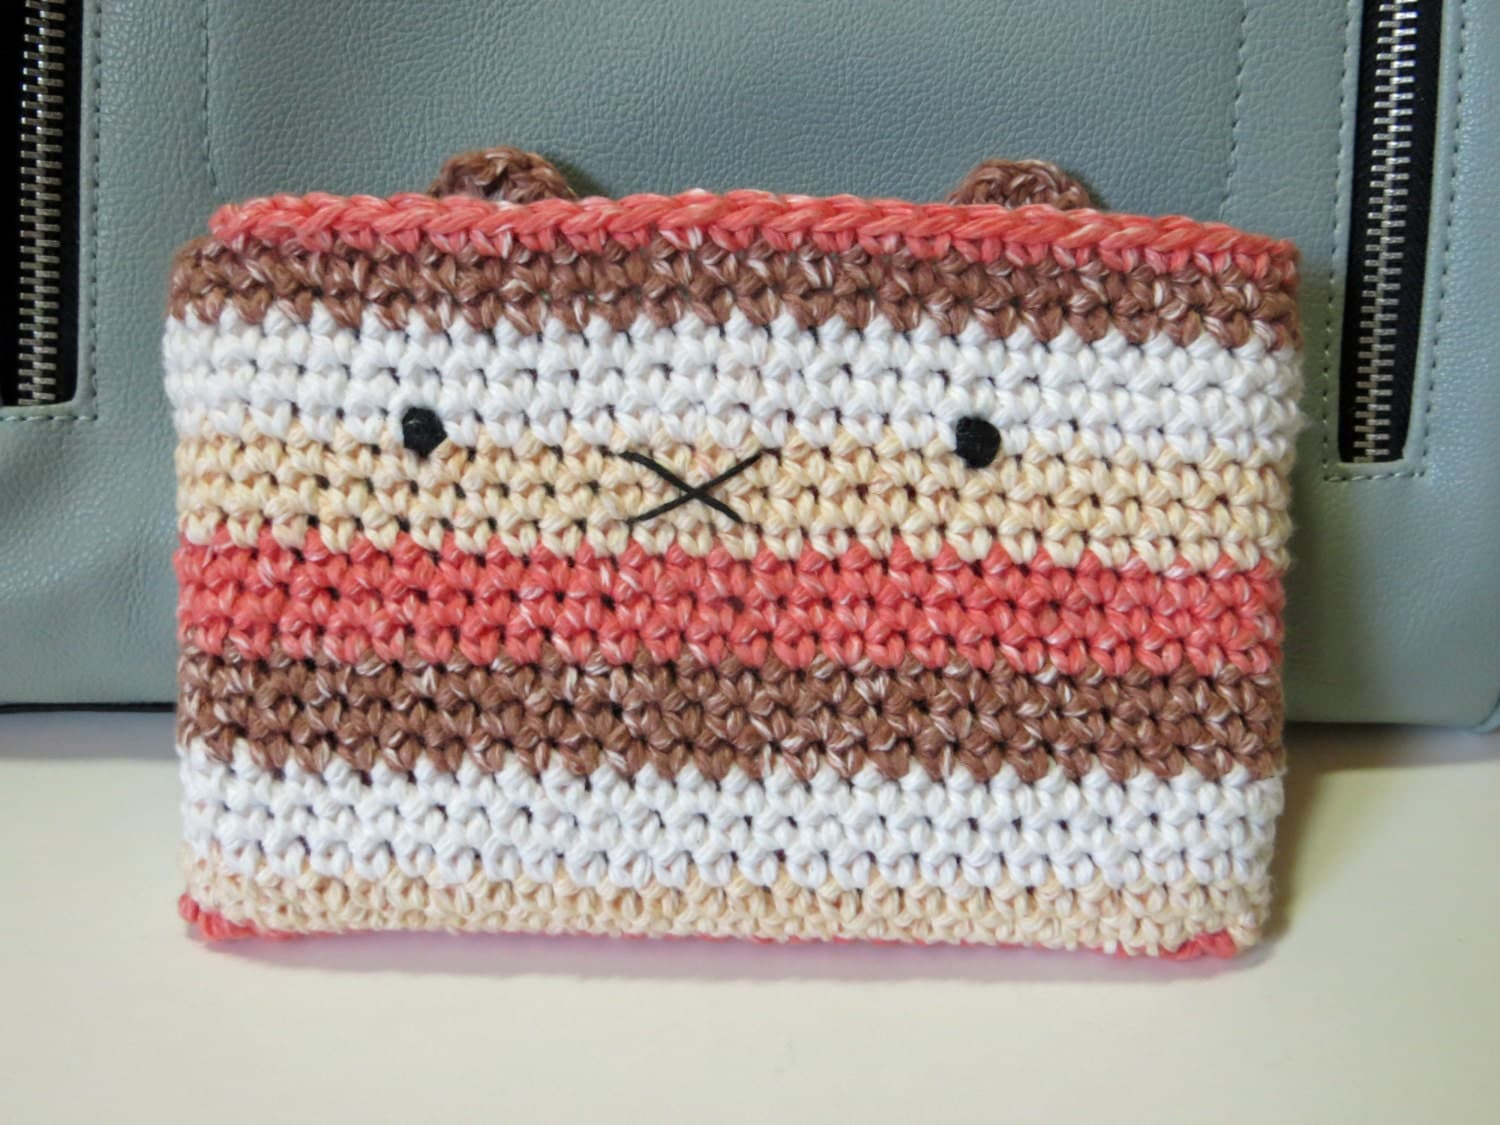 3ds Xl Sleeve Case ��zoom